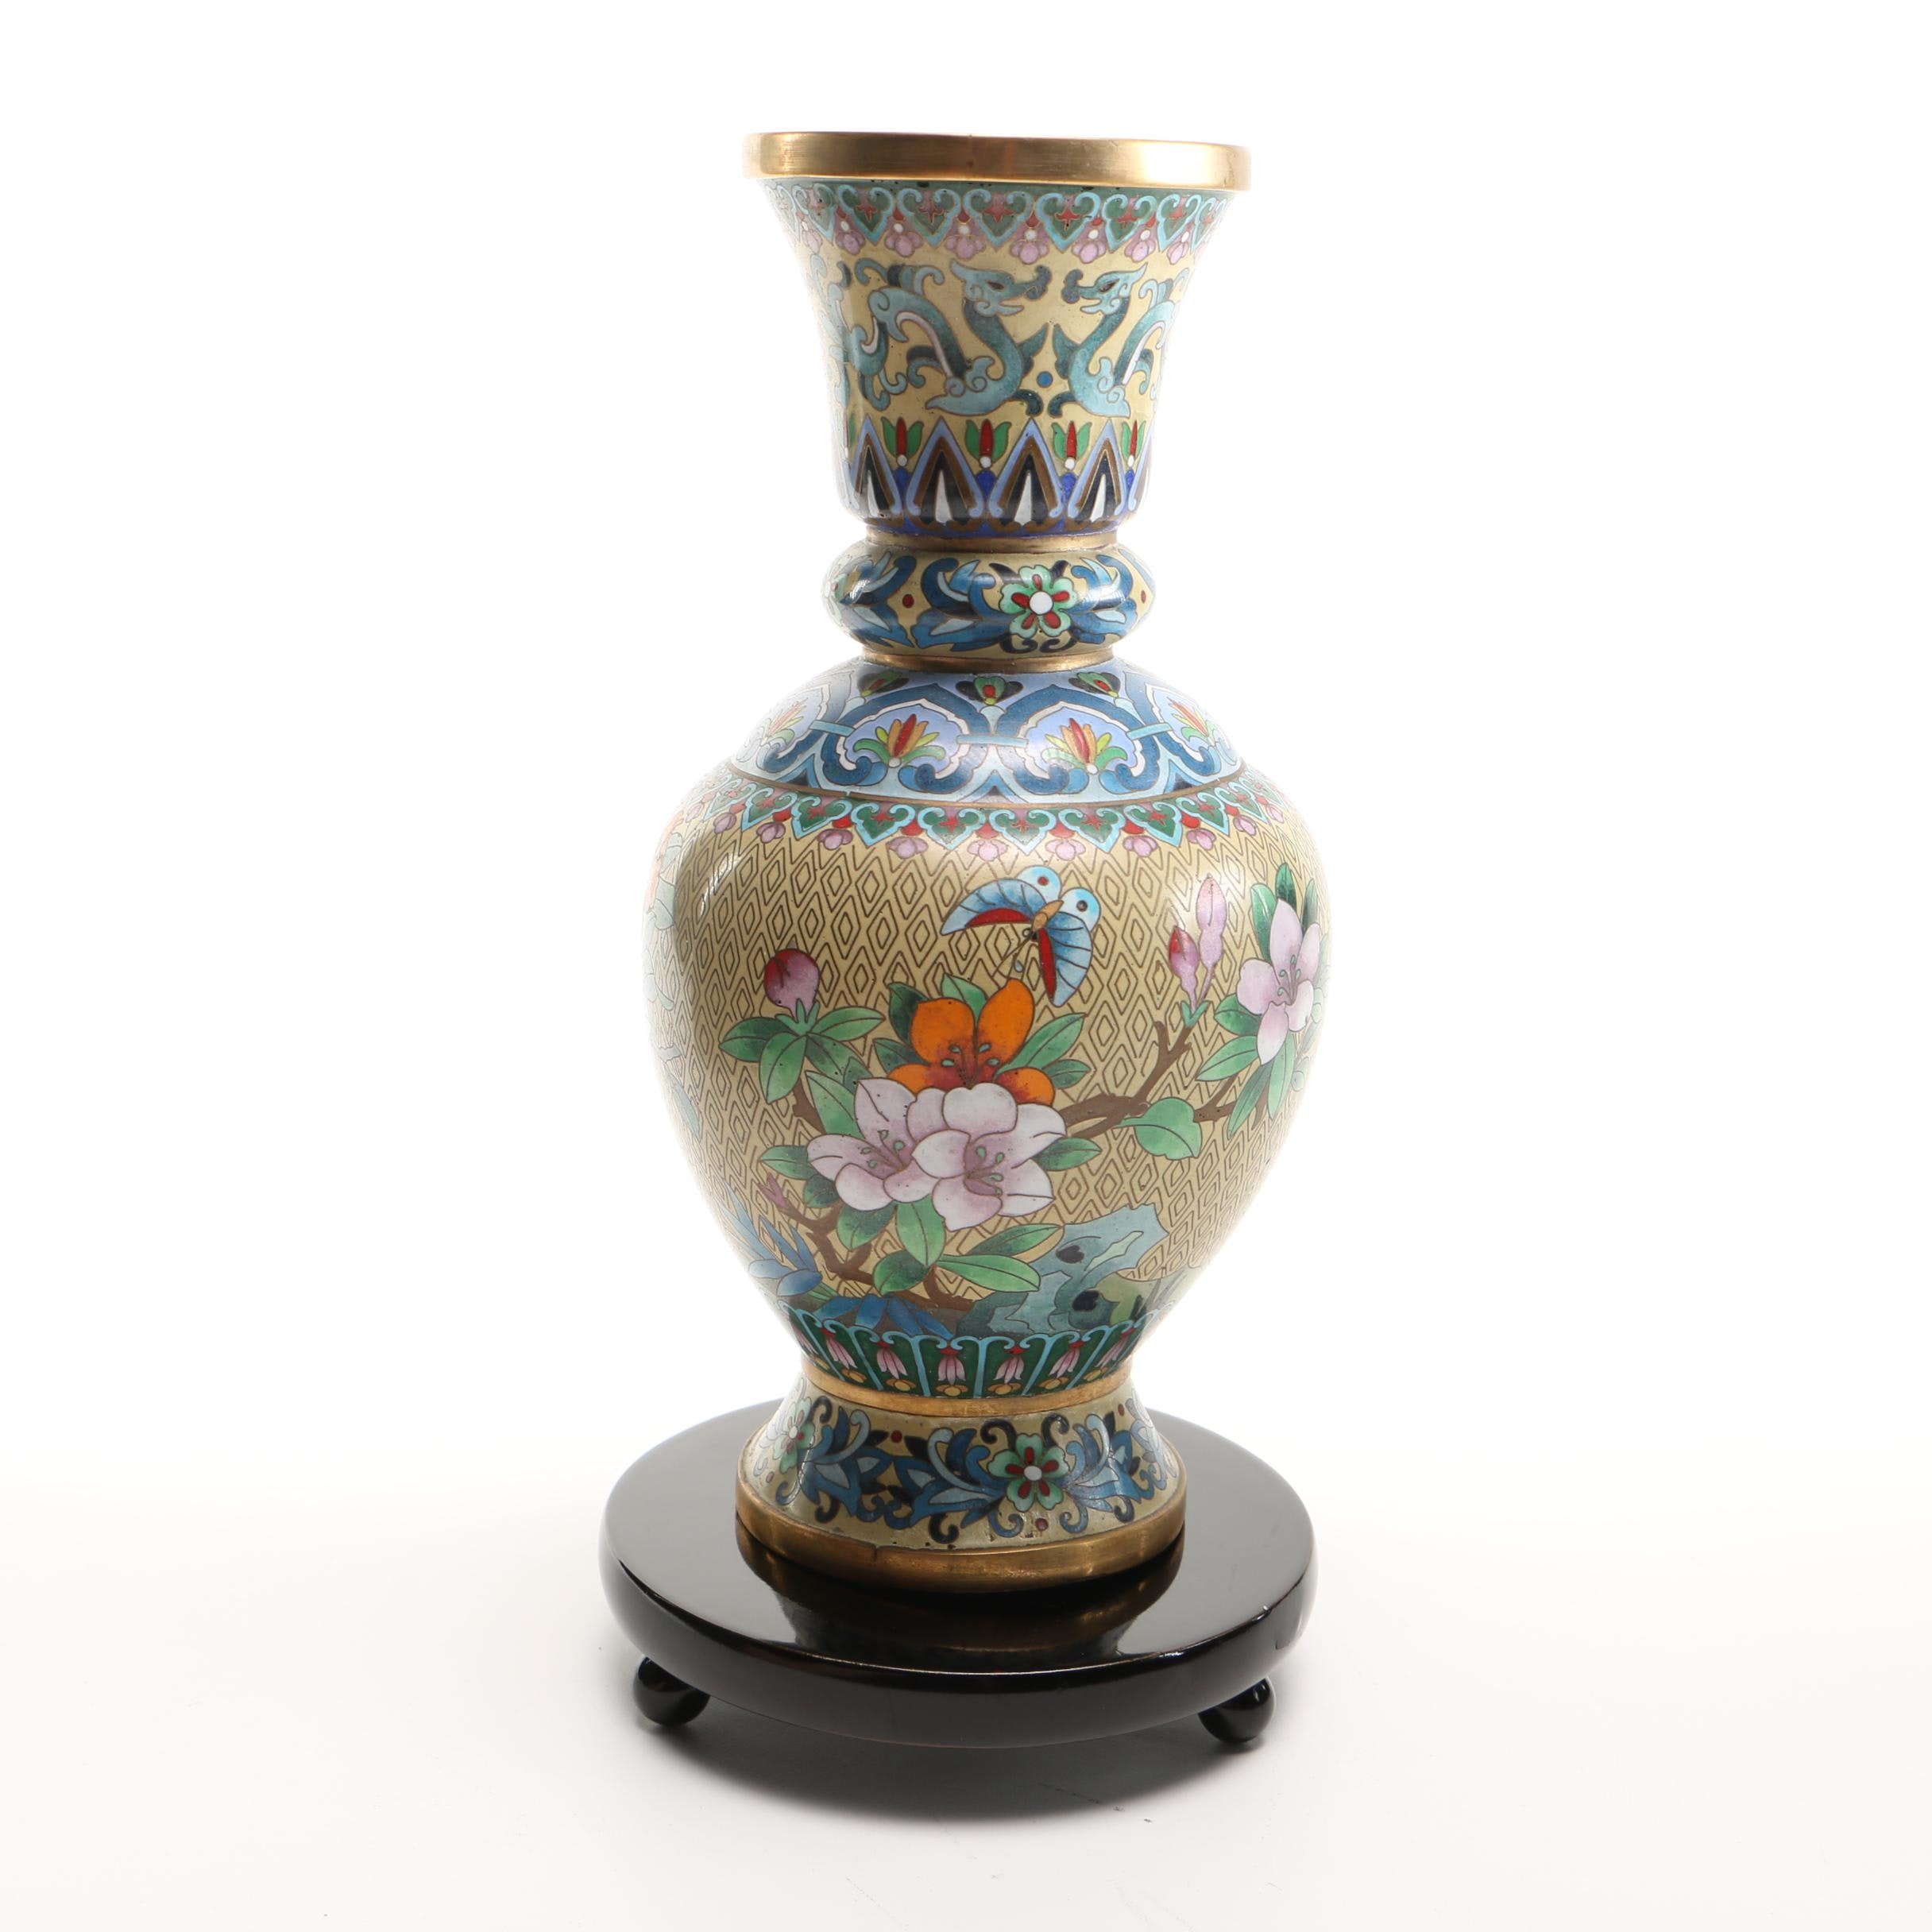 Enameled Brass Vase and Wooden Stand